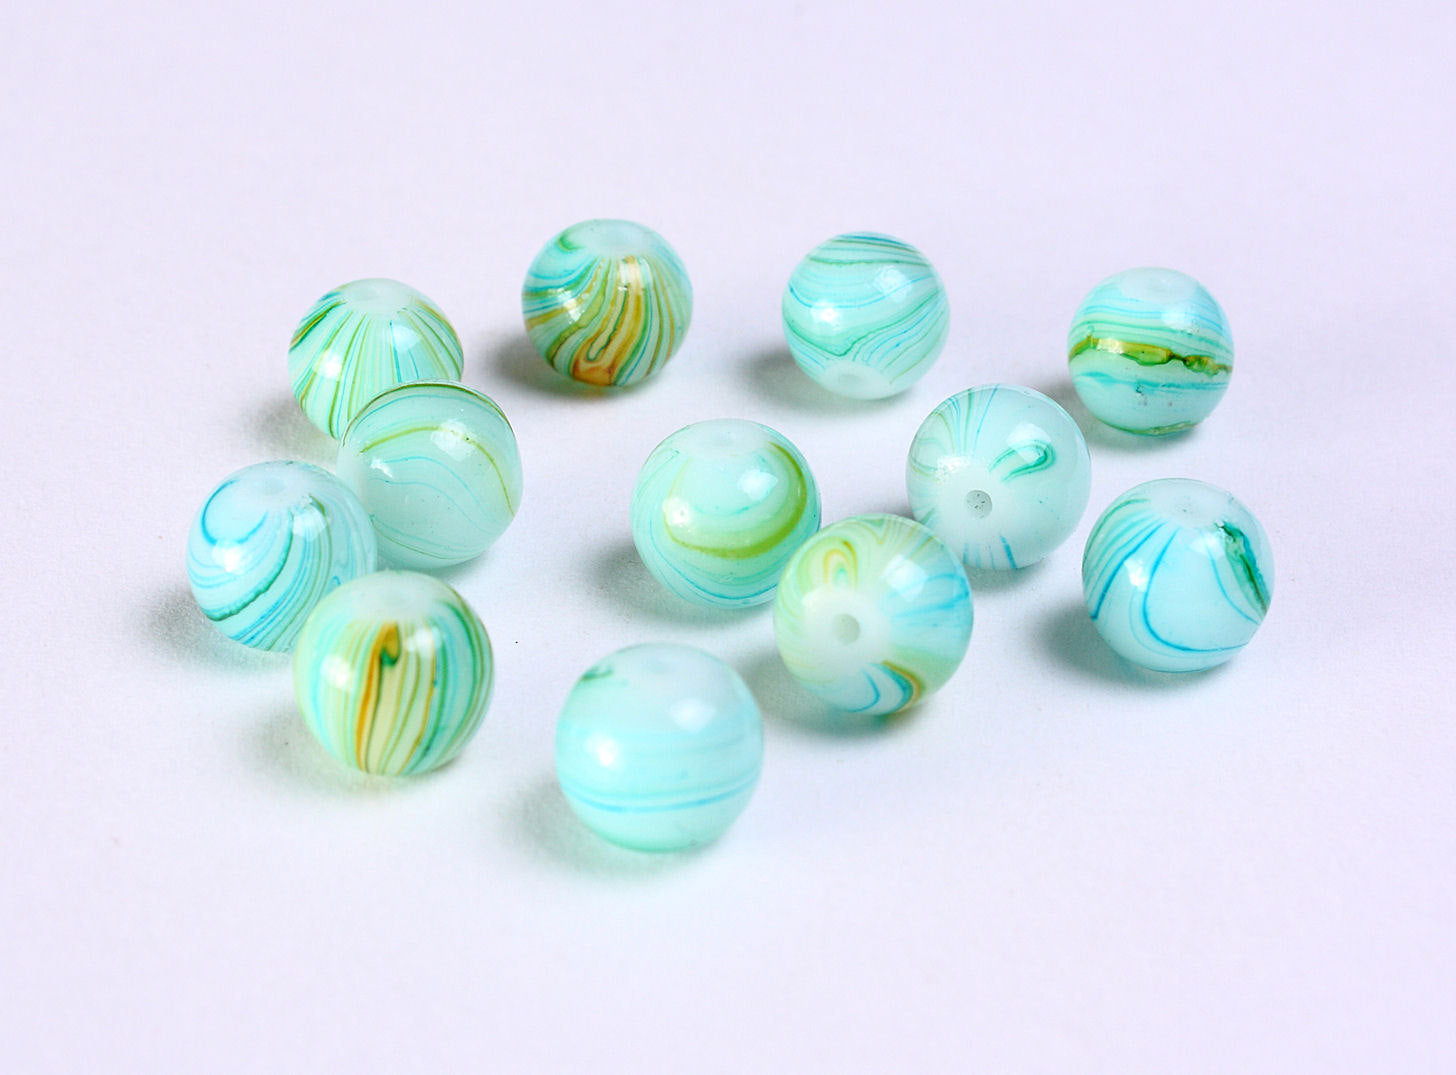 8mm Green beads - Green round beads - green glass beads - Marble beads - 12 pieces (1156)